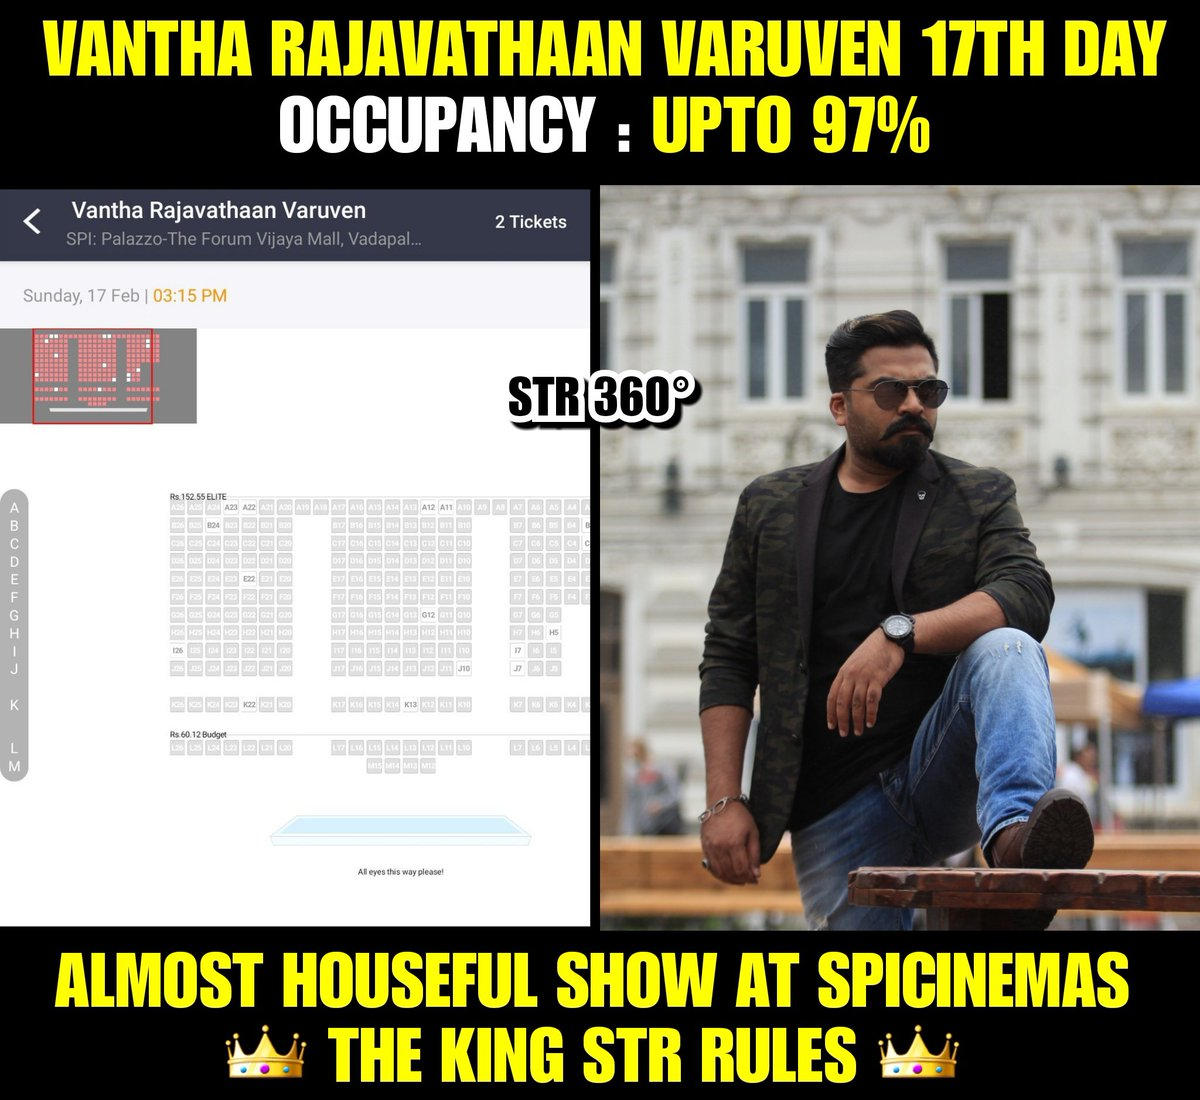 #VanthaRajavathaanVaruven still going steady with outstanding 97% occupancy. Family Audience Raging on 17th day for #STR . Even after plenty of releases for past 2 weeks!  True #VRVFamilyBlockbuster !!  #STRTheKing #vrvblockbuster @LycaProductions @aditi1231